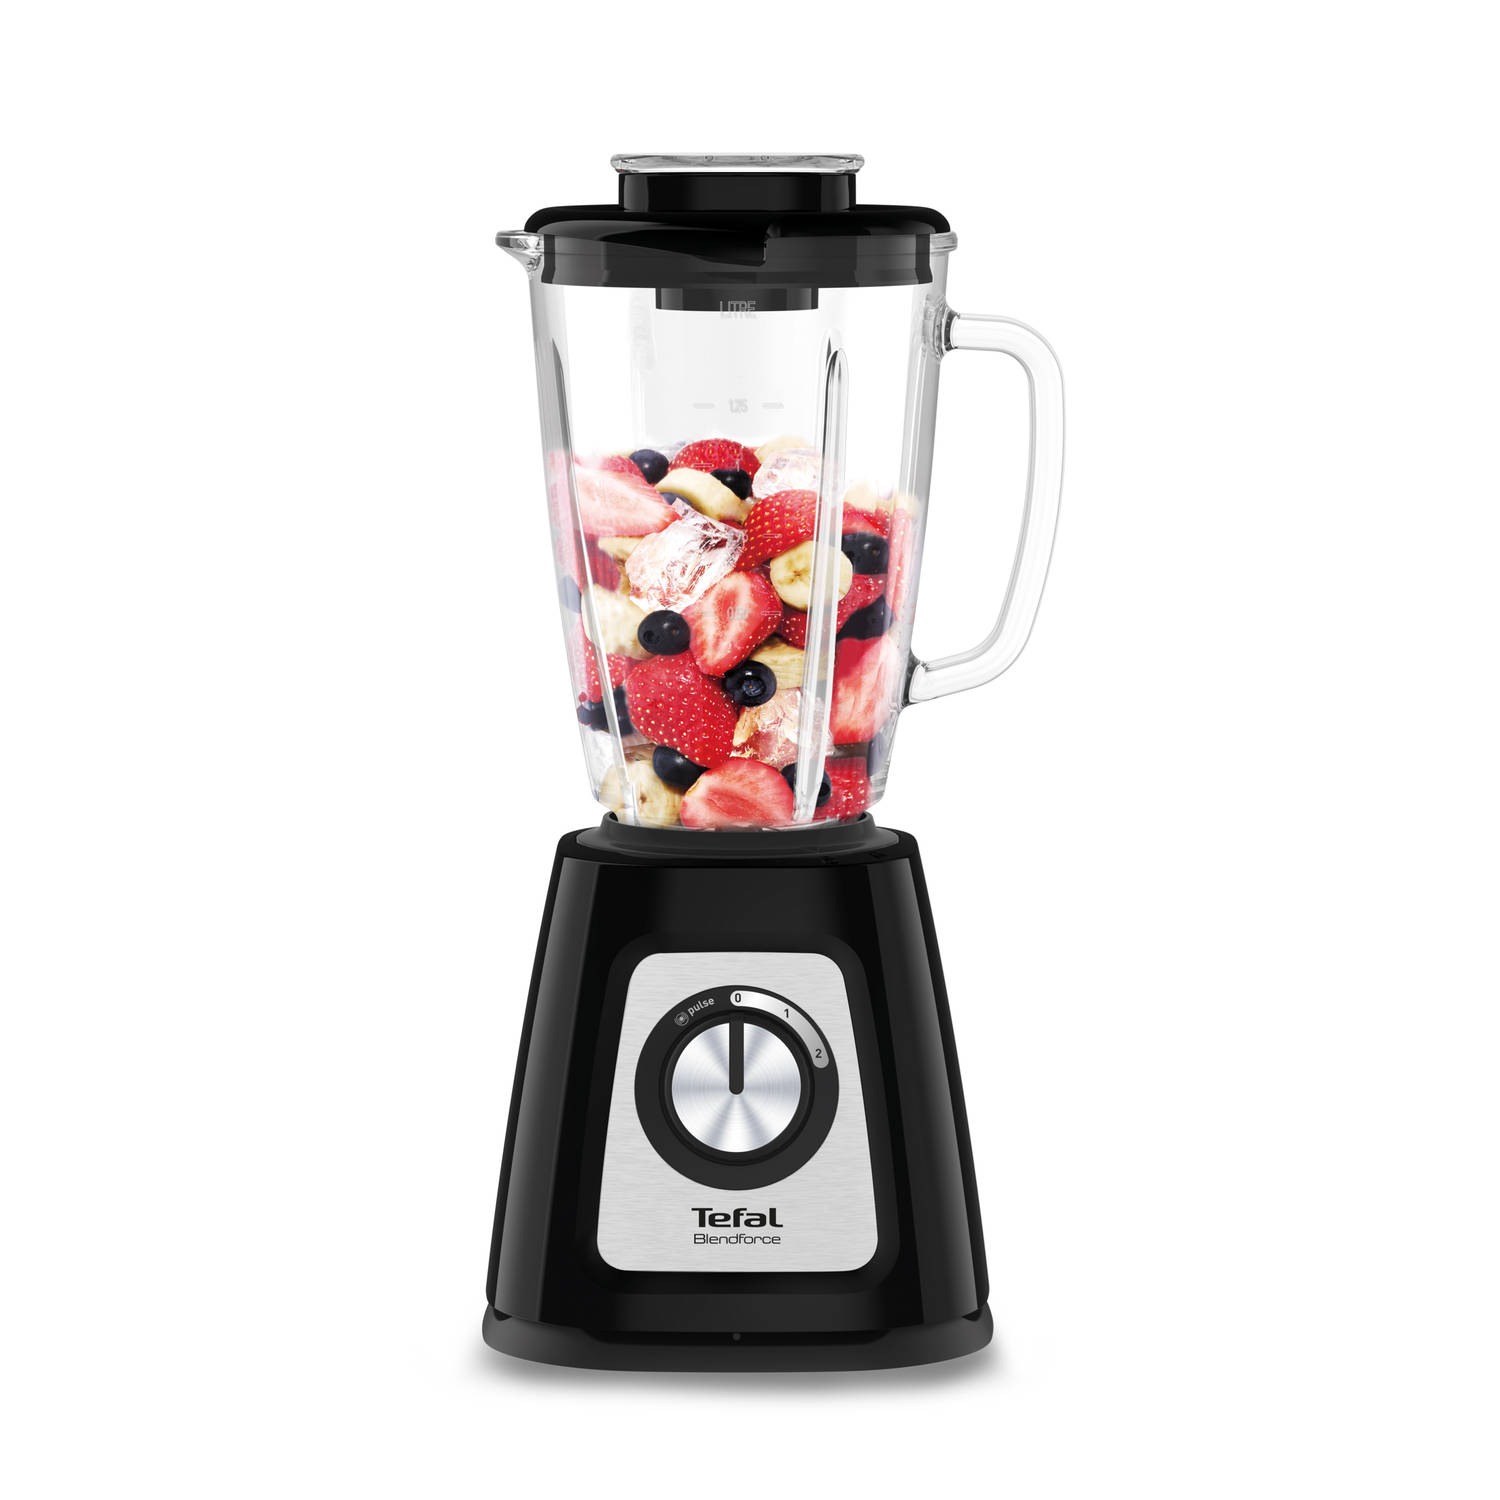 Tefal blender Blendforce II BL4358